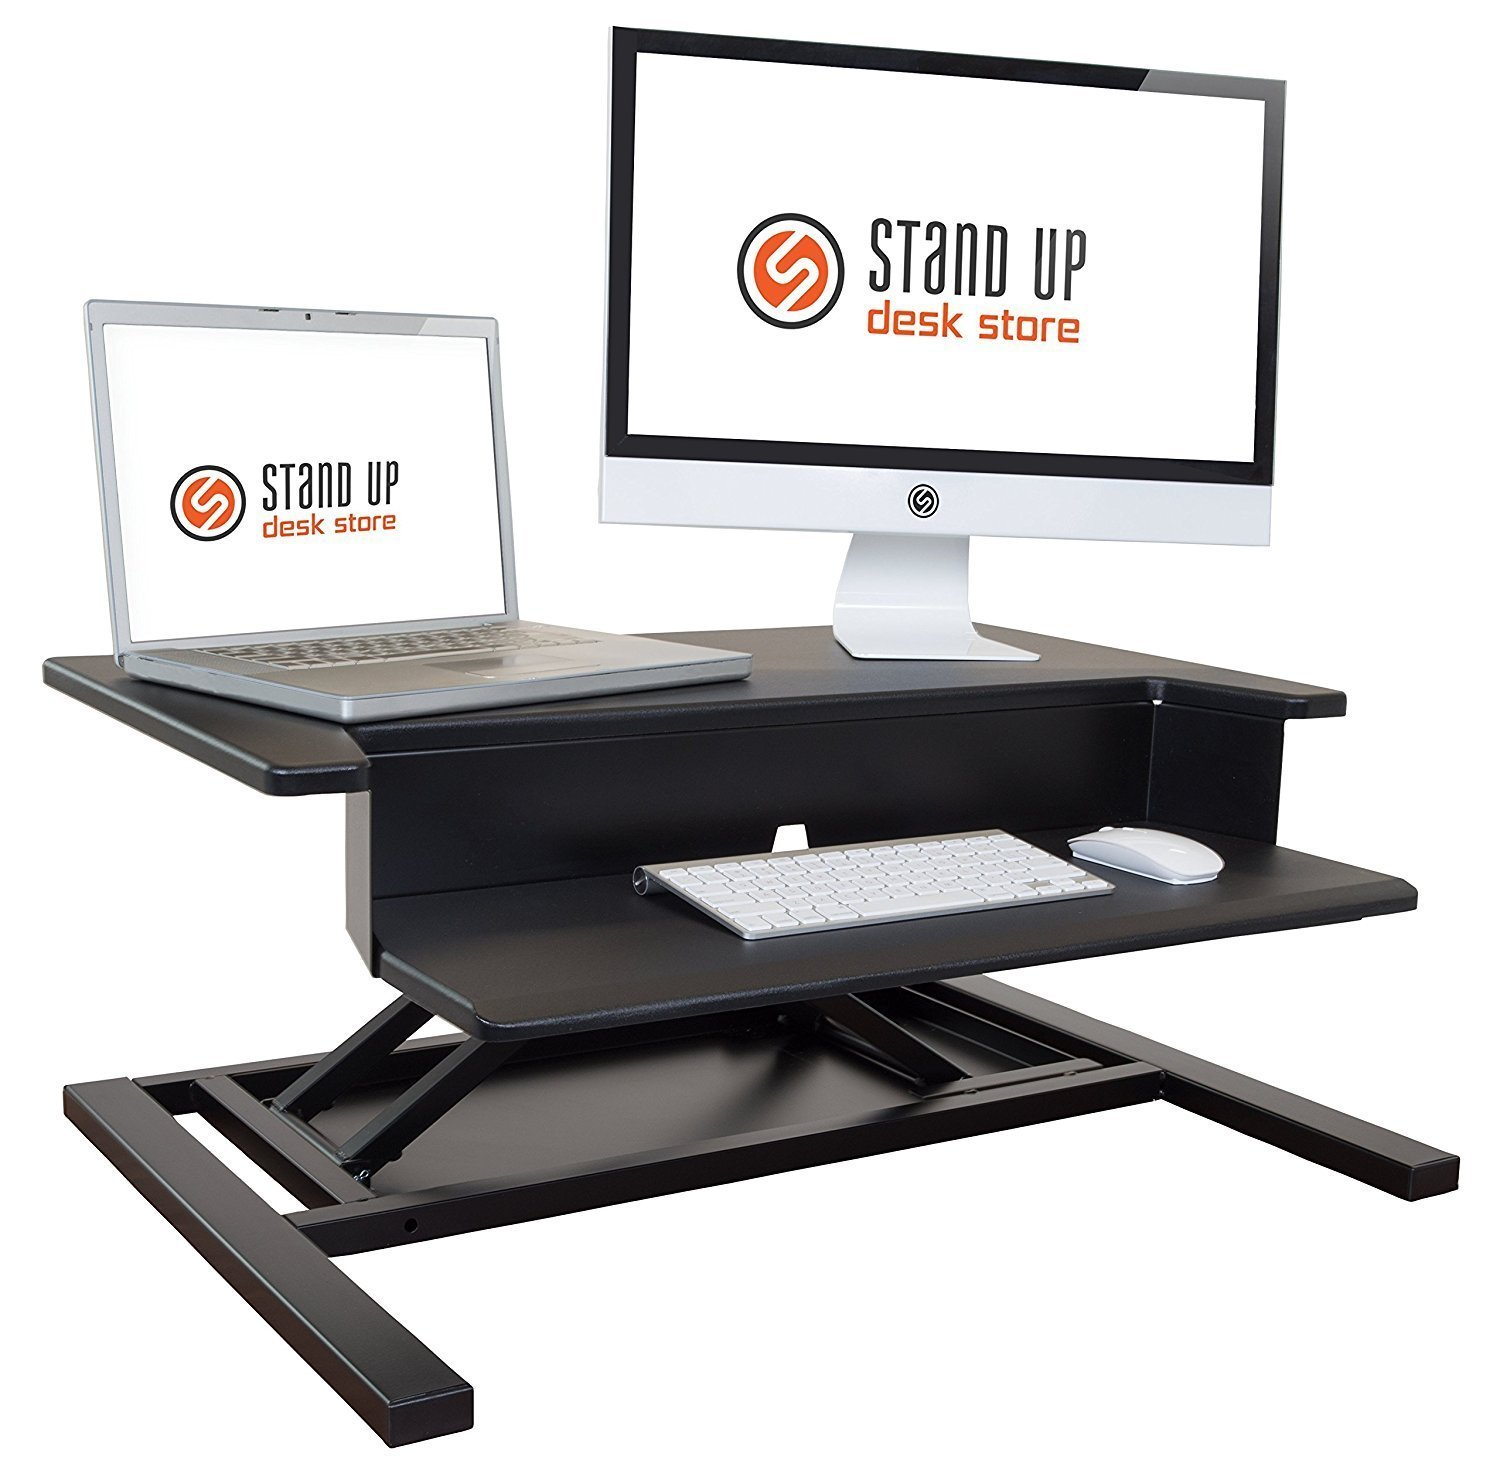 Stand Up Desk Store Airrise Pro Height Adjustable Standing